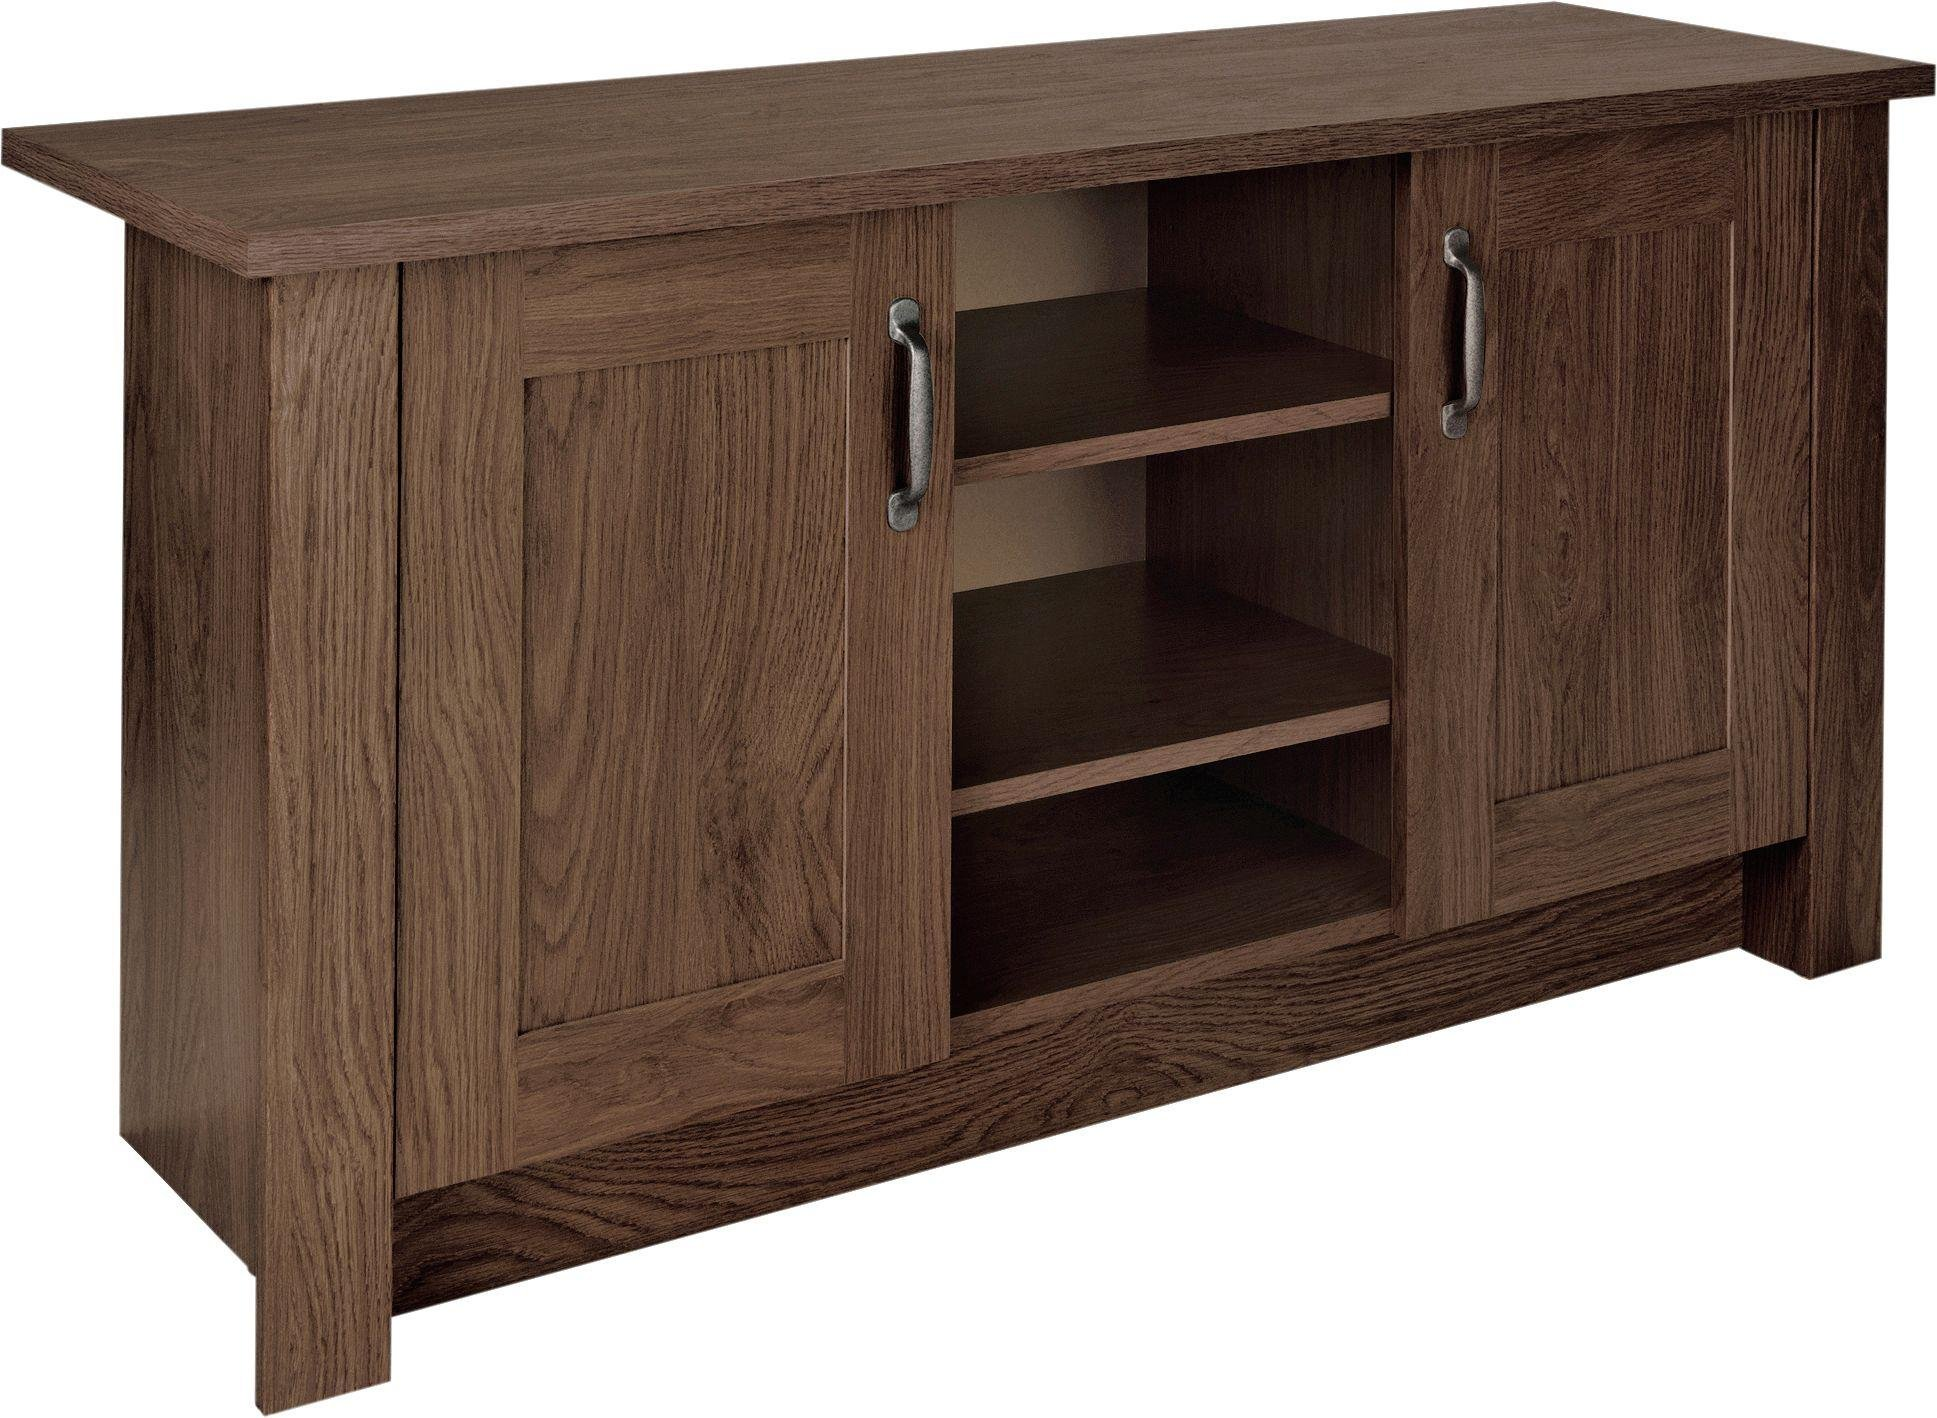 sale on collection ohio 2 door low sideboard tv unit walnut effect the collection by argos now. Black Bedroom Furniture Sets. Home Design Ideas